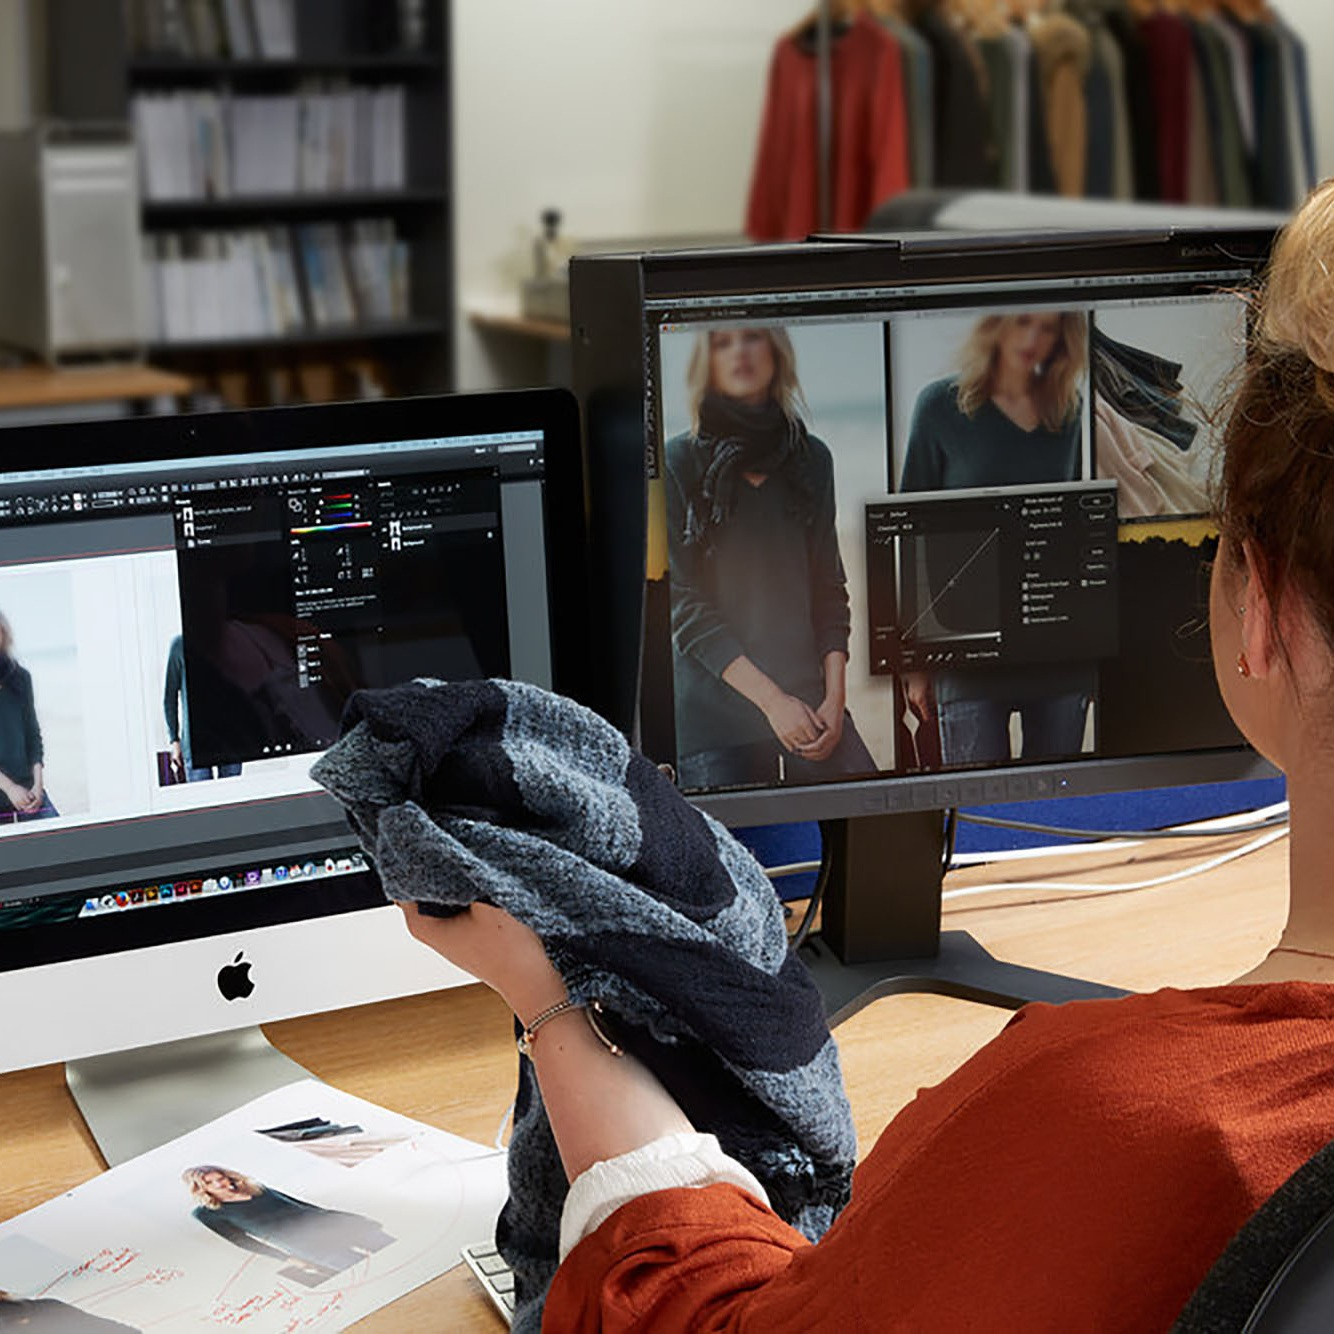 Post-production - Post-production is a necessary part of the process of filmmaking, video production, and photography. All the stages of the post-production process right down to the tiniest detail are managed by our dedicated team, ensuring the final product is always of the highest quality.